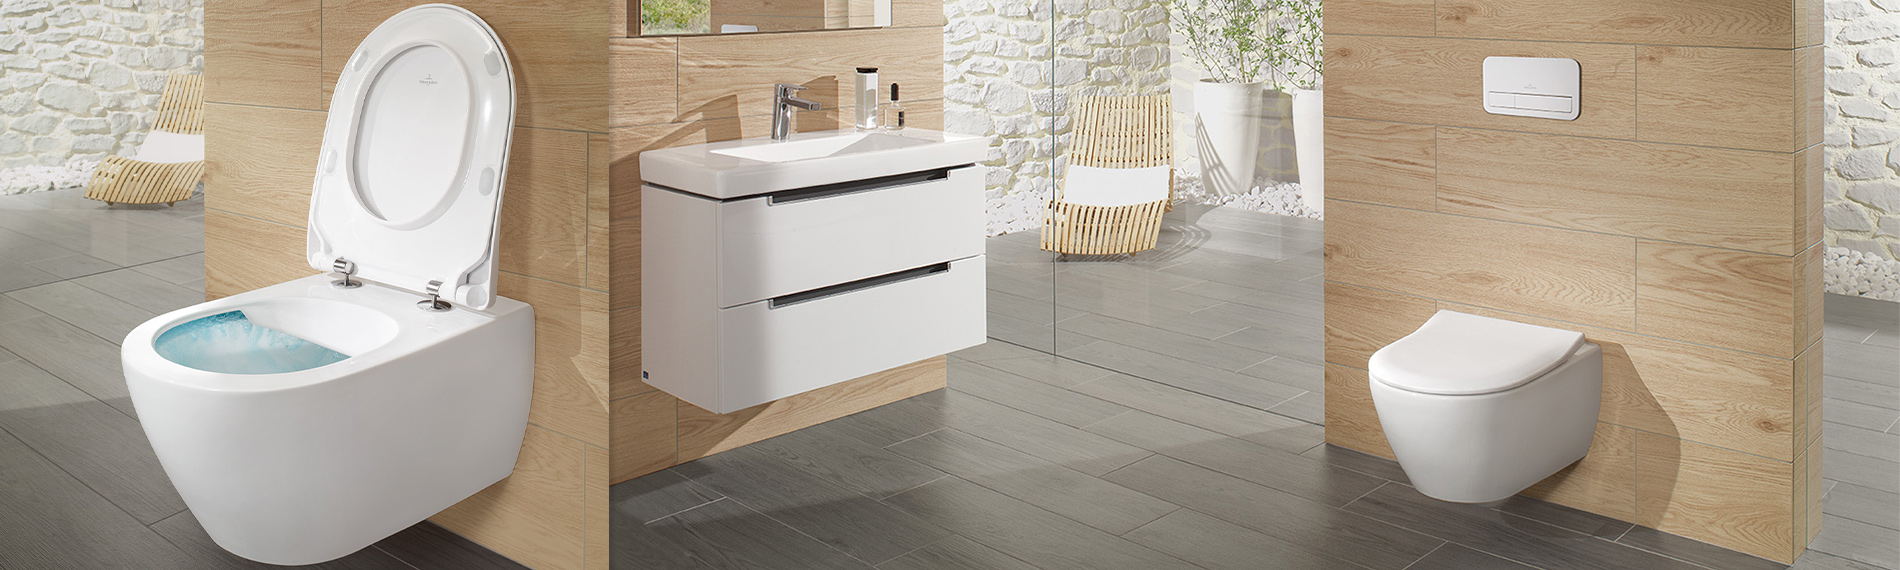 directflush - Villeroy And Boch Bathroom Cabinets